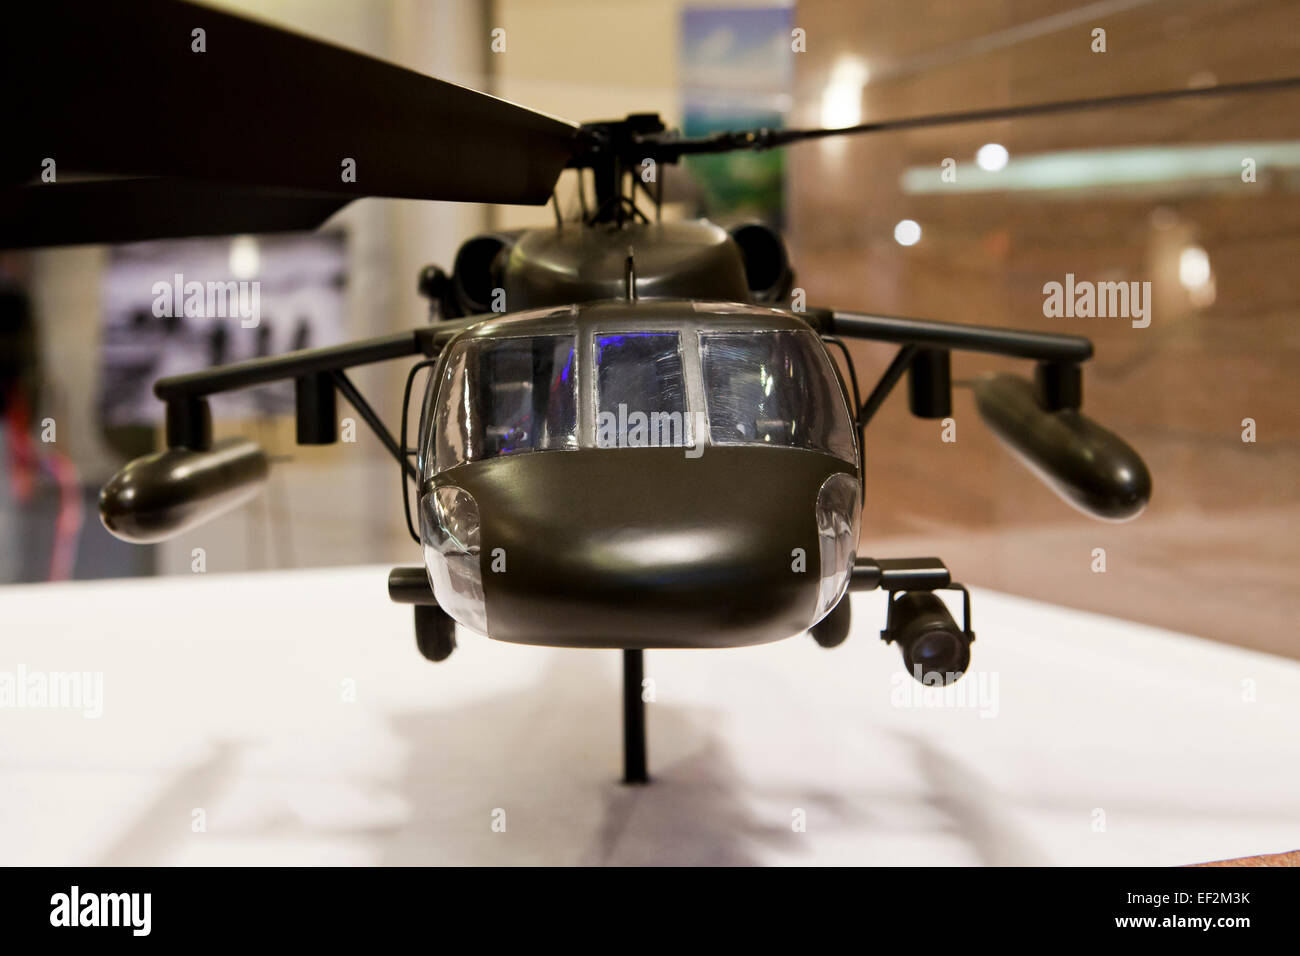 Model of Sikorsky UH-60 Black Hawk utility helicopter used by US Coast Guard - Stock Image